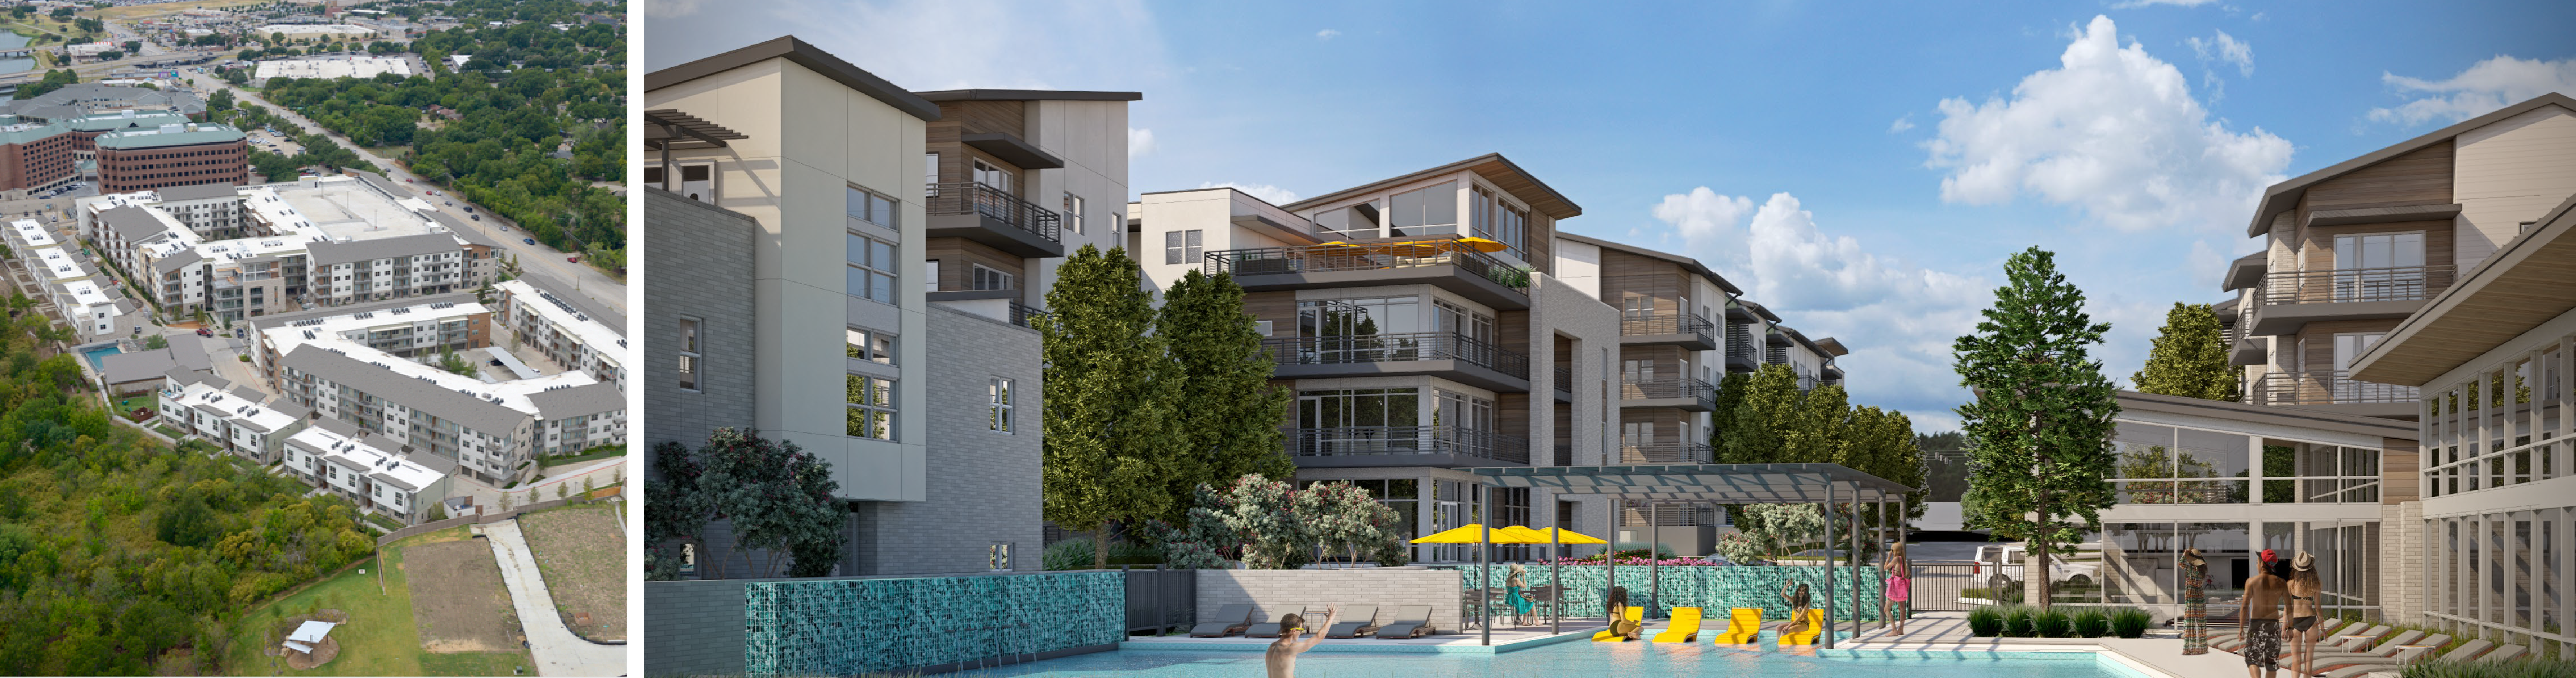 trinsic residential group aura bluffview apartments trinsic residential group